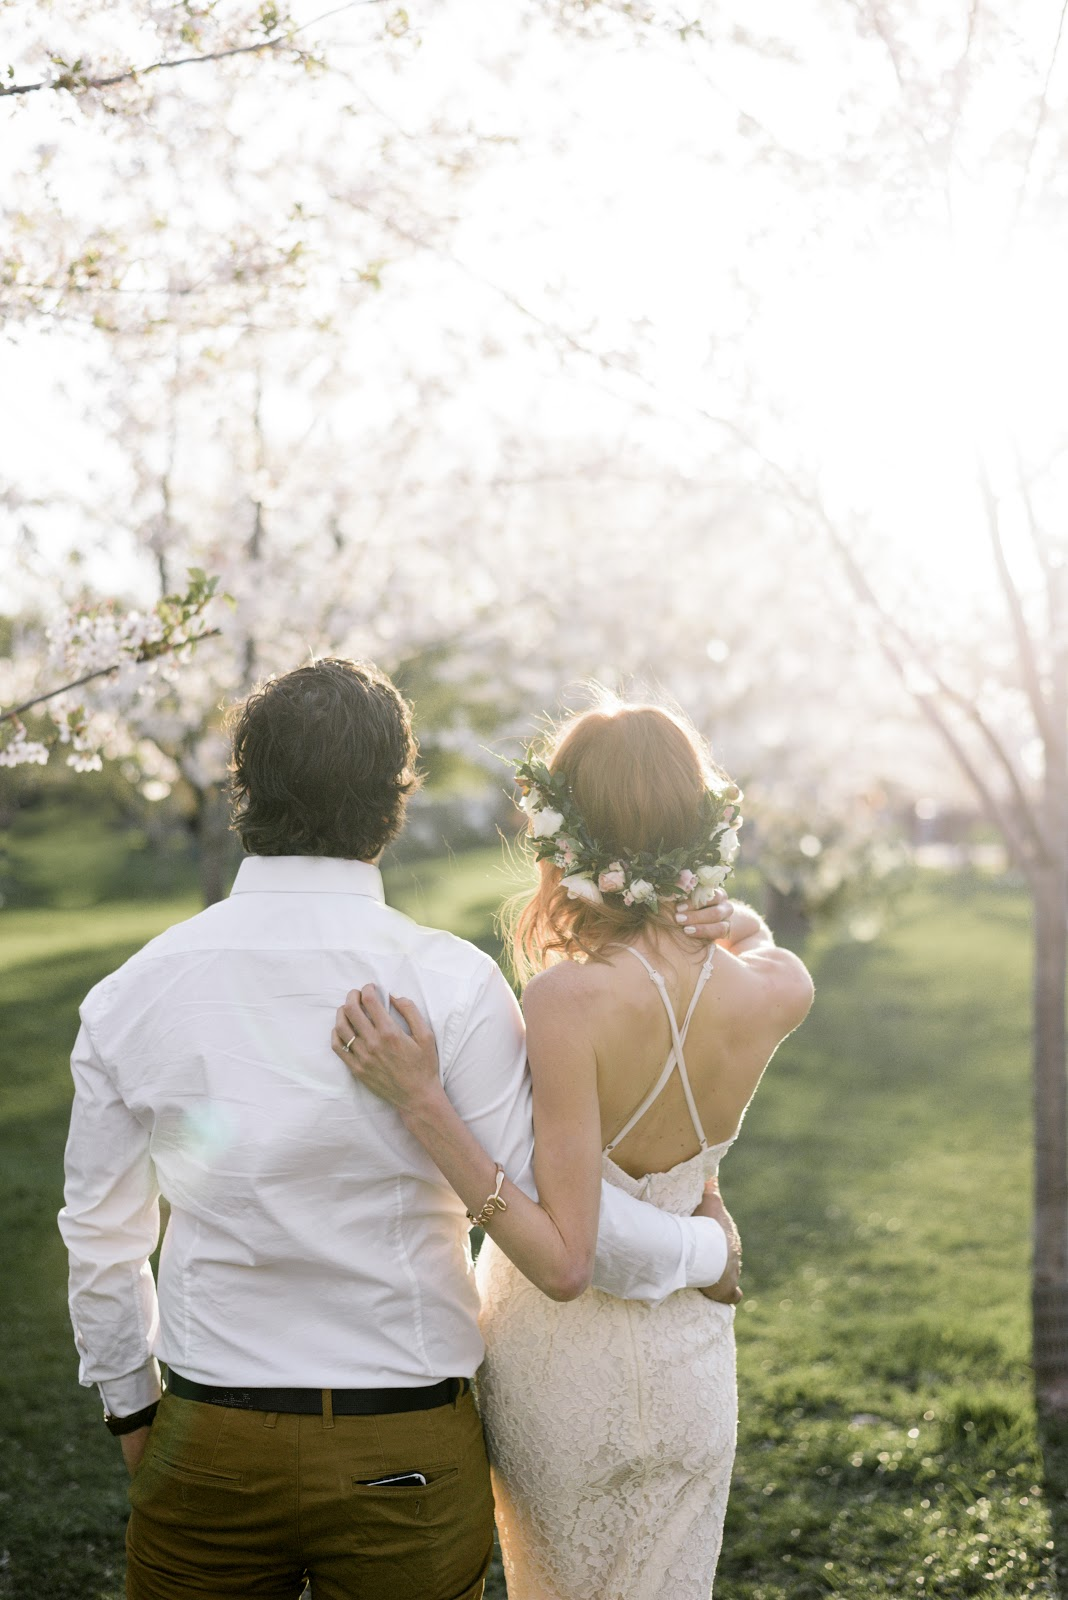 Gabriella and Brandon, Pastels & Pastries engagement, Toronto Engagement Shoot, Trinty Bellwoods Engagement, Cherry Blossom Engagement Shoot, how to plan an engagement shoot, Alix Gould Photography, lace boho wedding dress, wild north florals crown, Honey lace dress